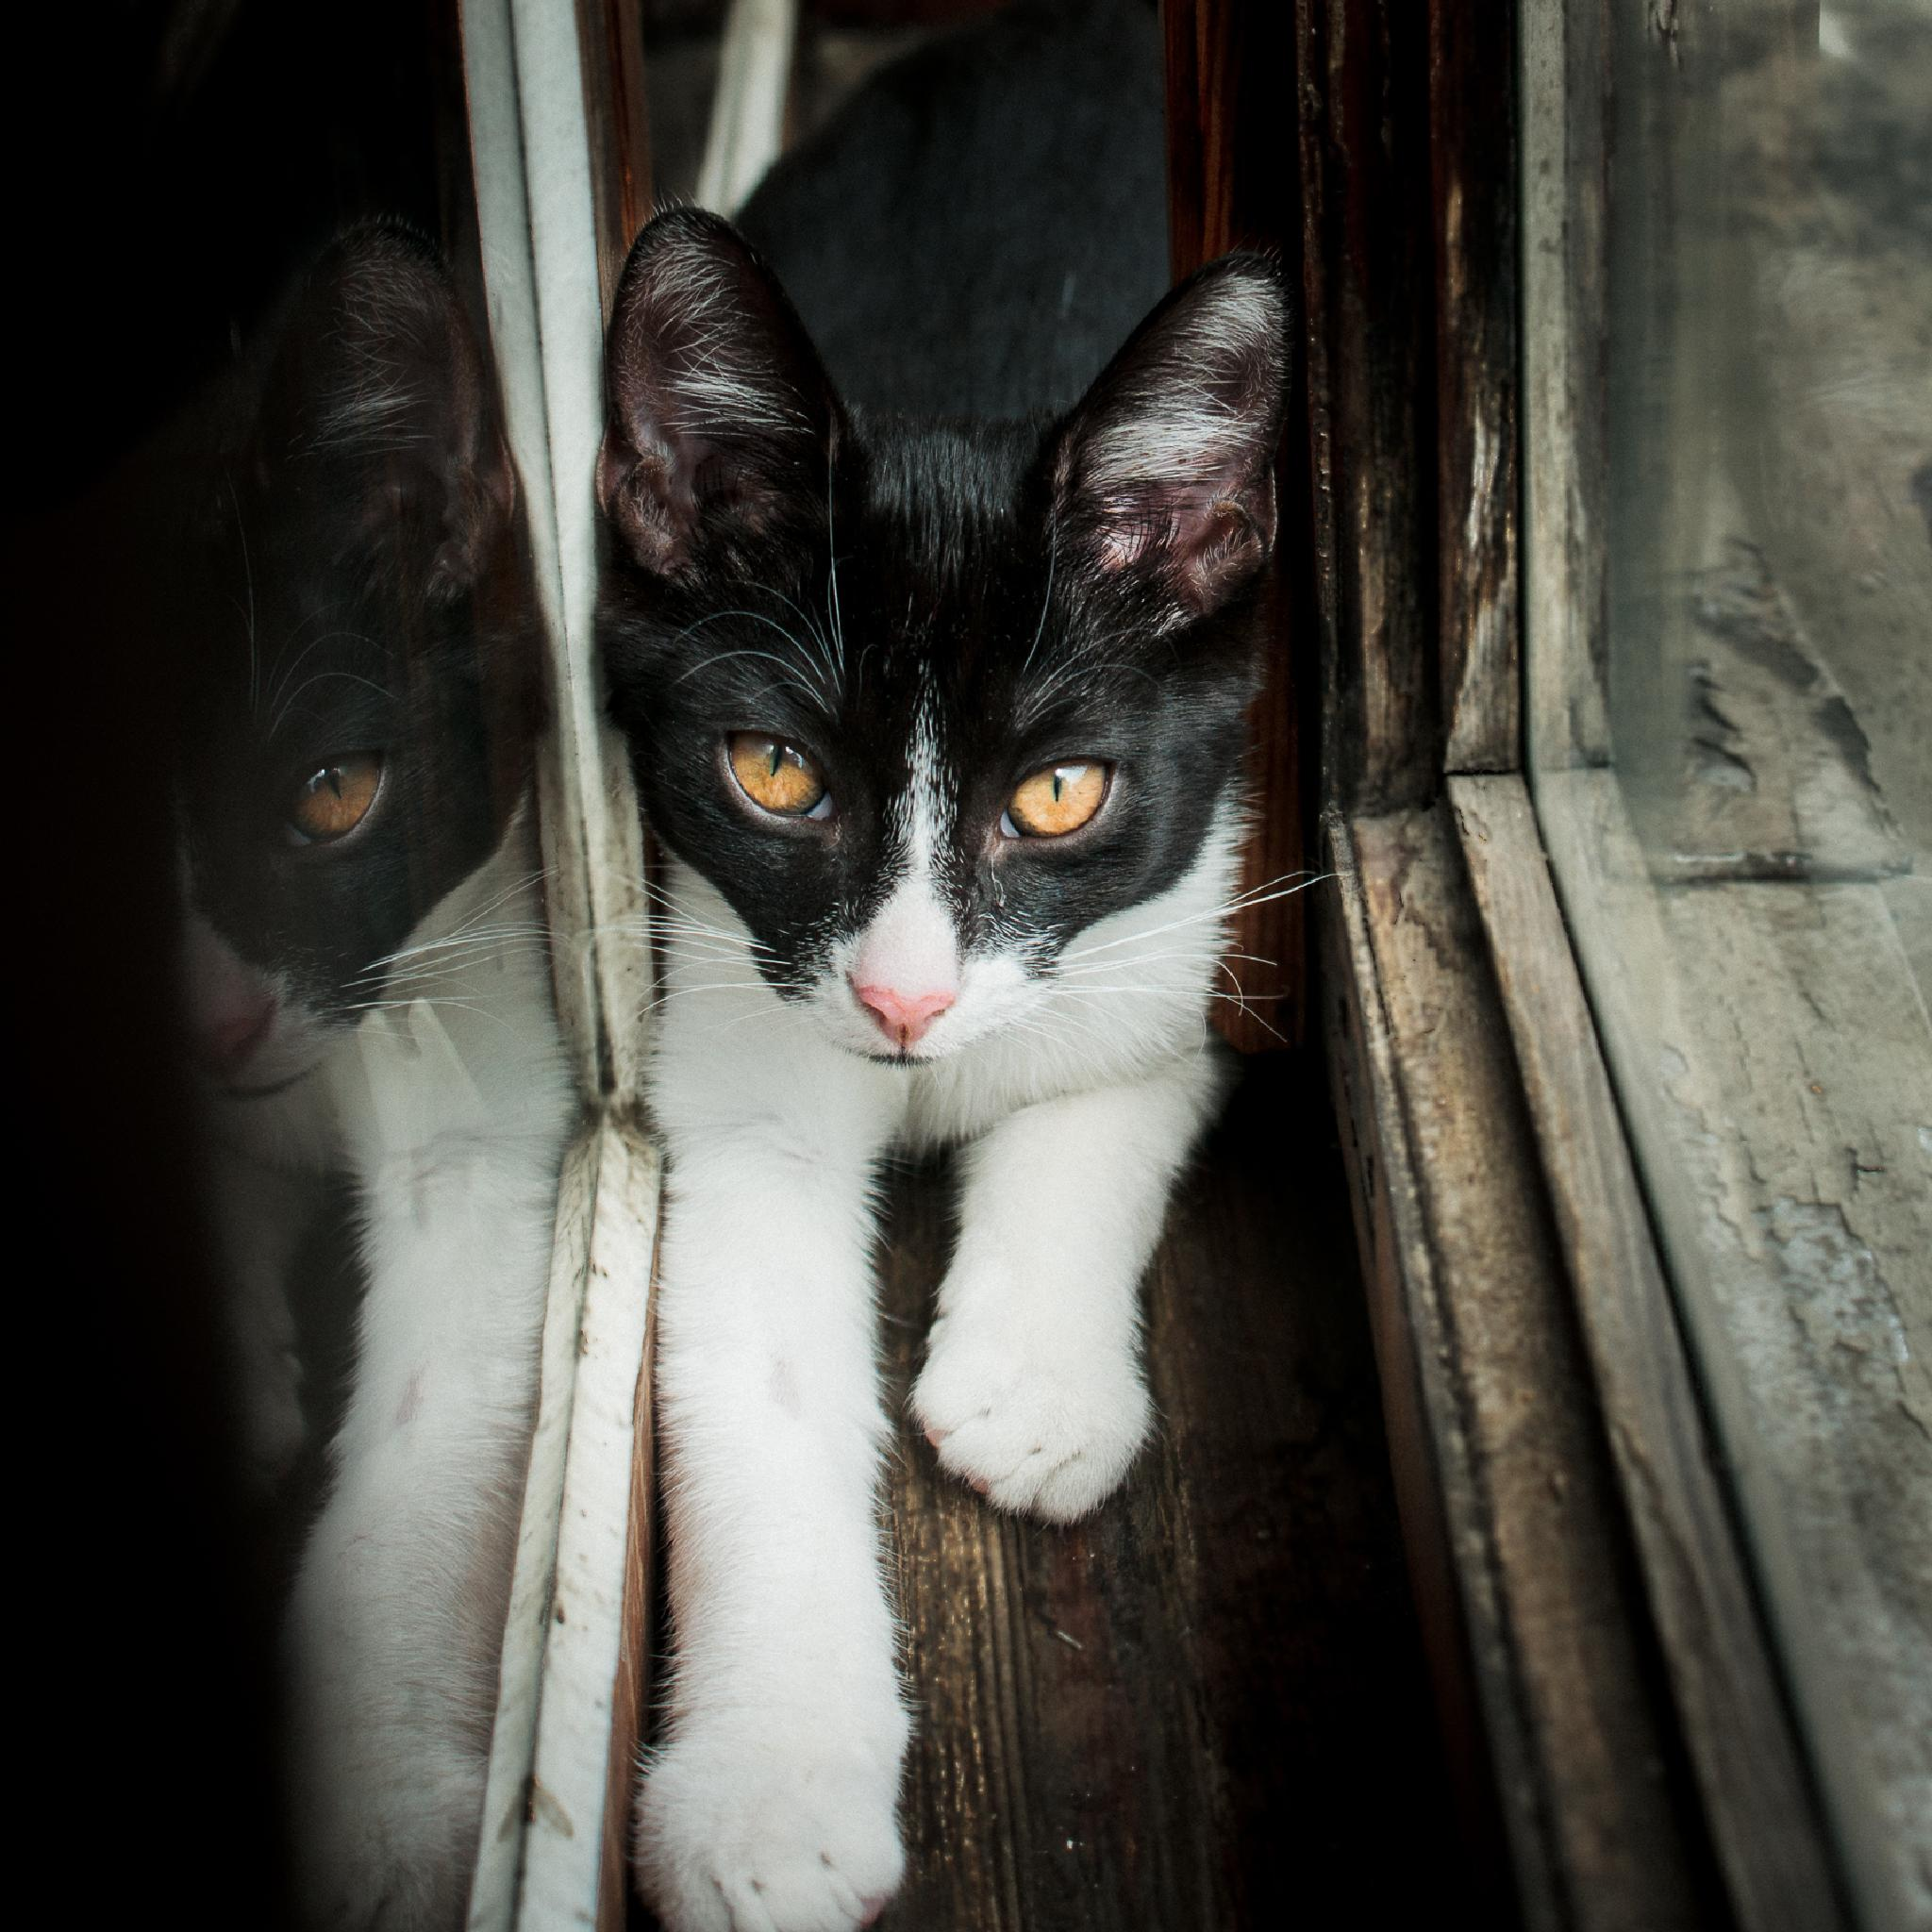 A young cat and an old window II by nataliadab